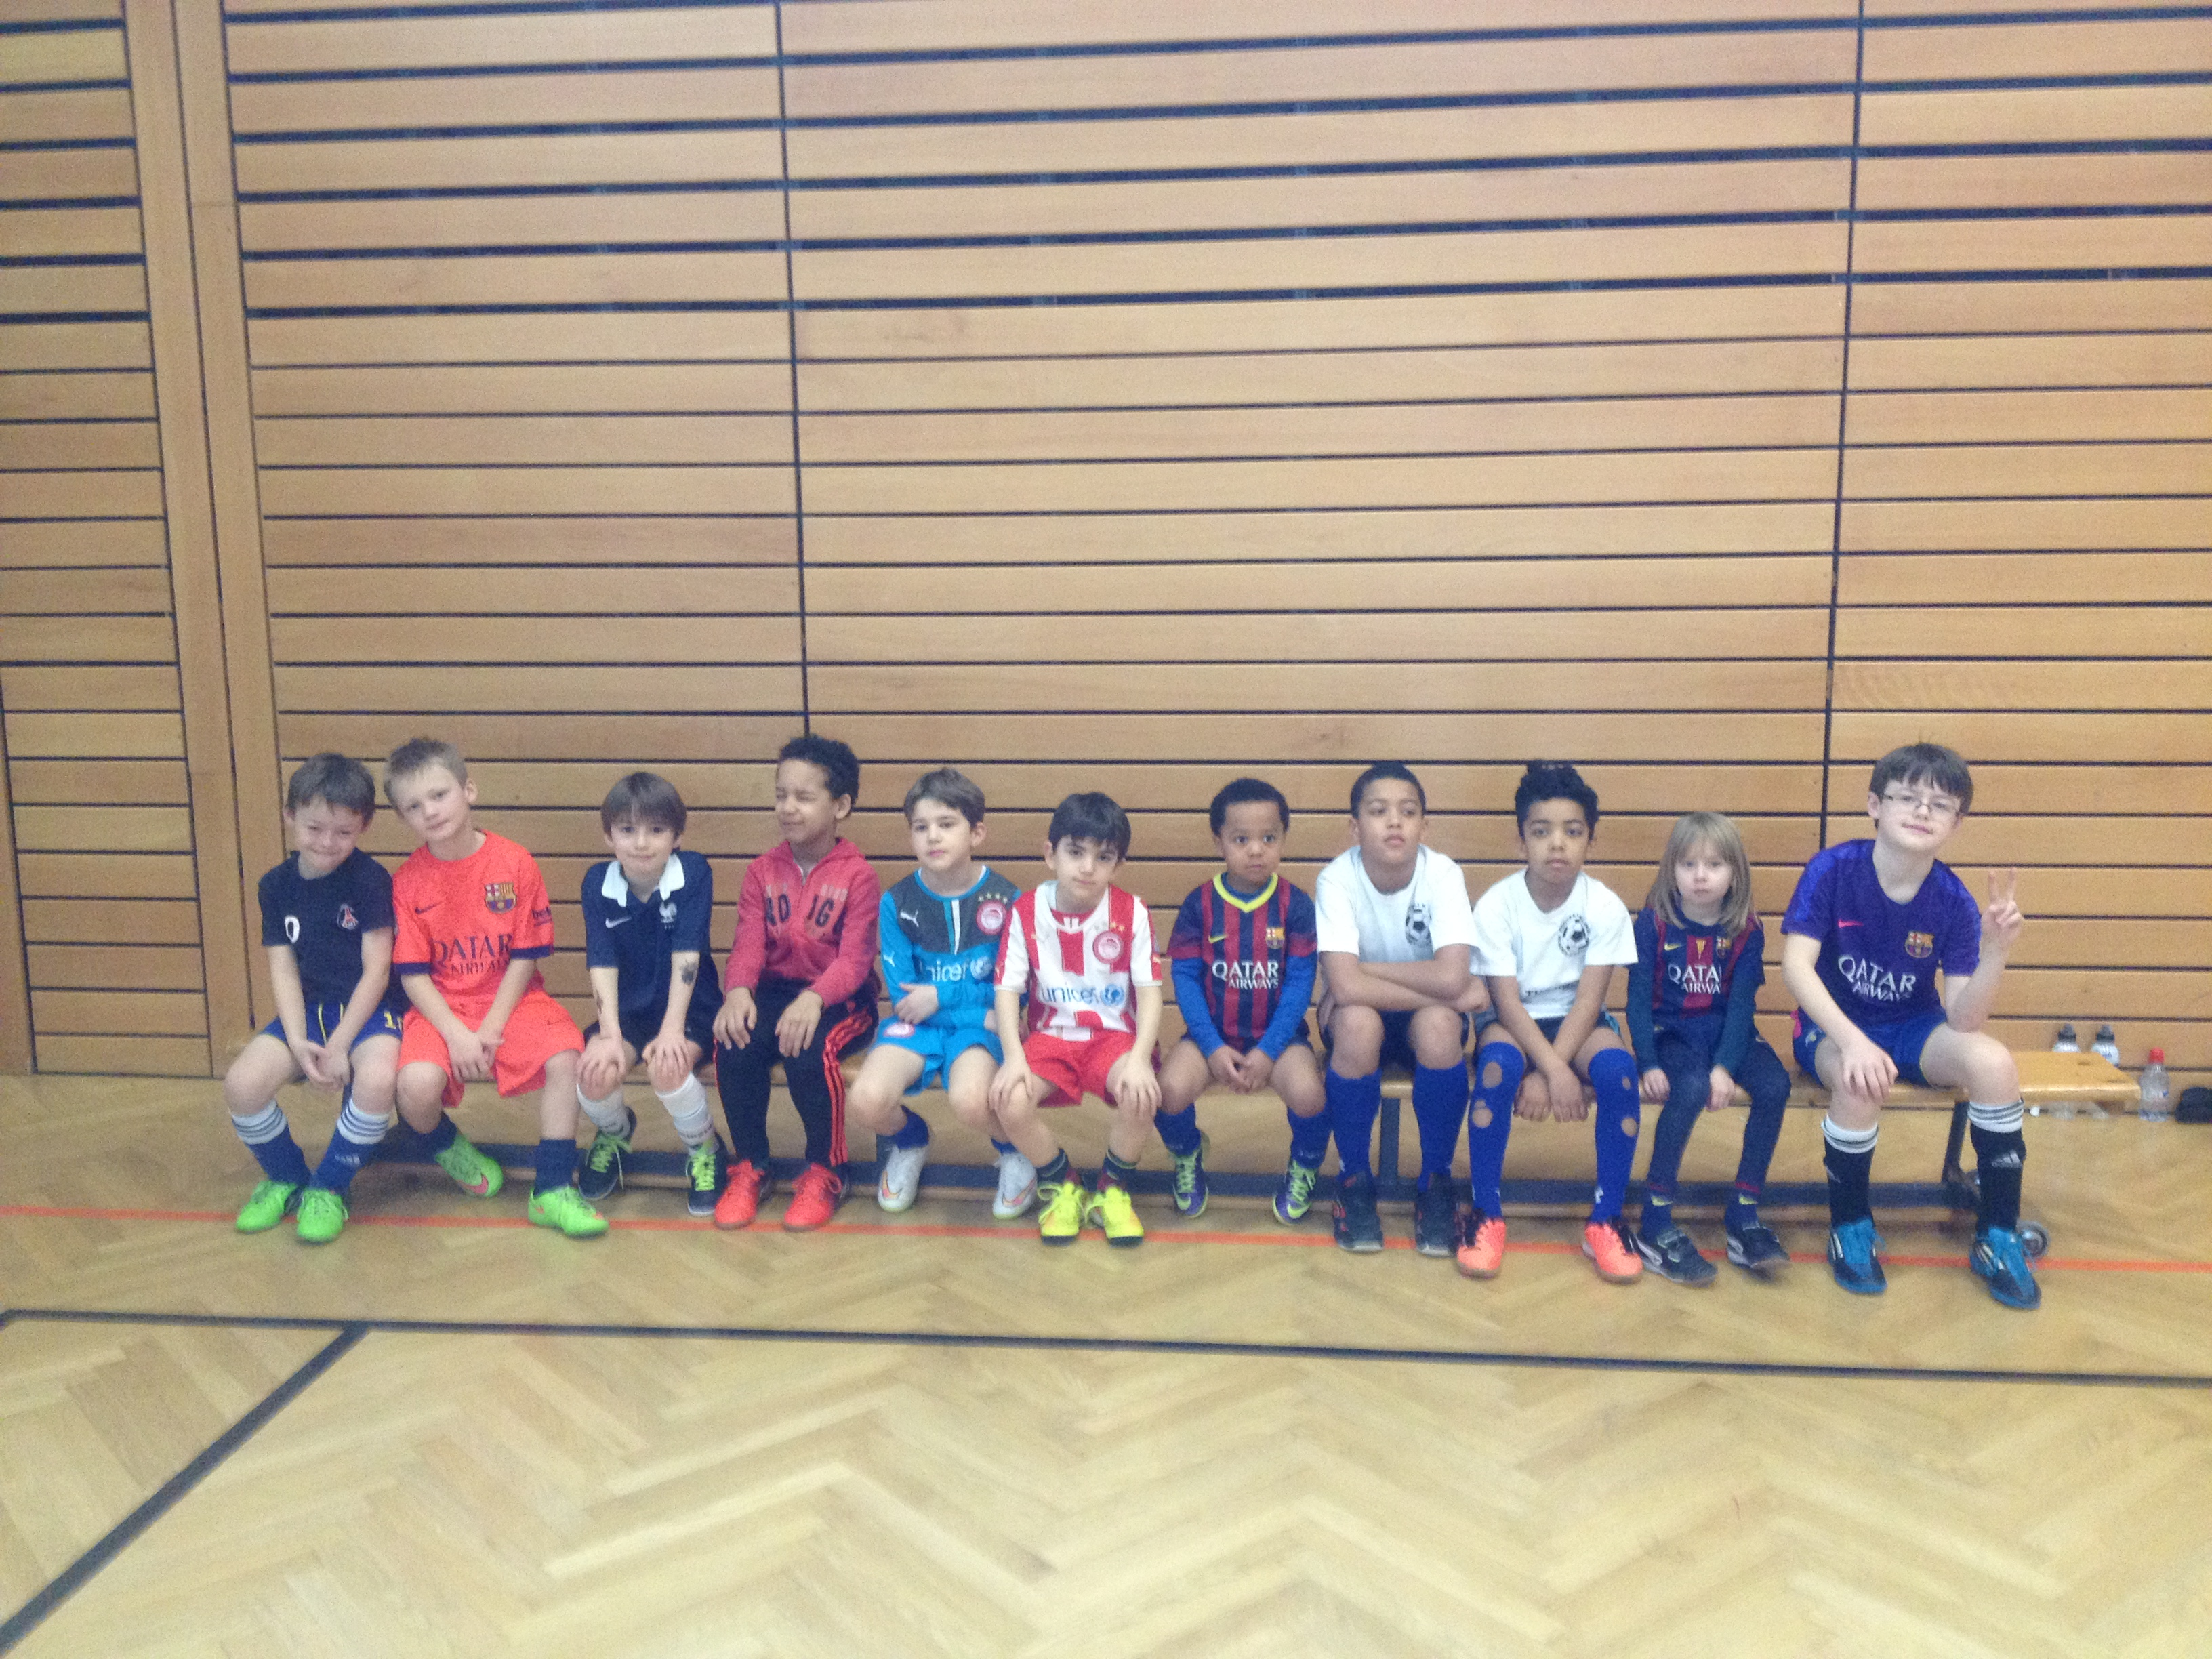 Football Klinik Academy - Junior Session Indoor  Soccer Carnival Camp